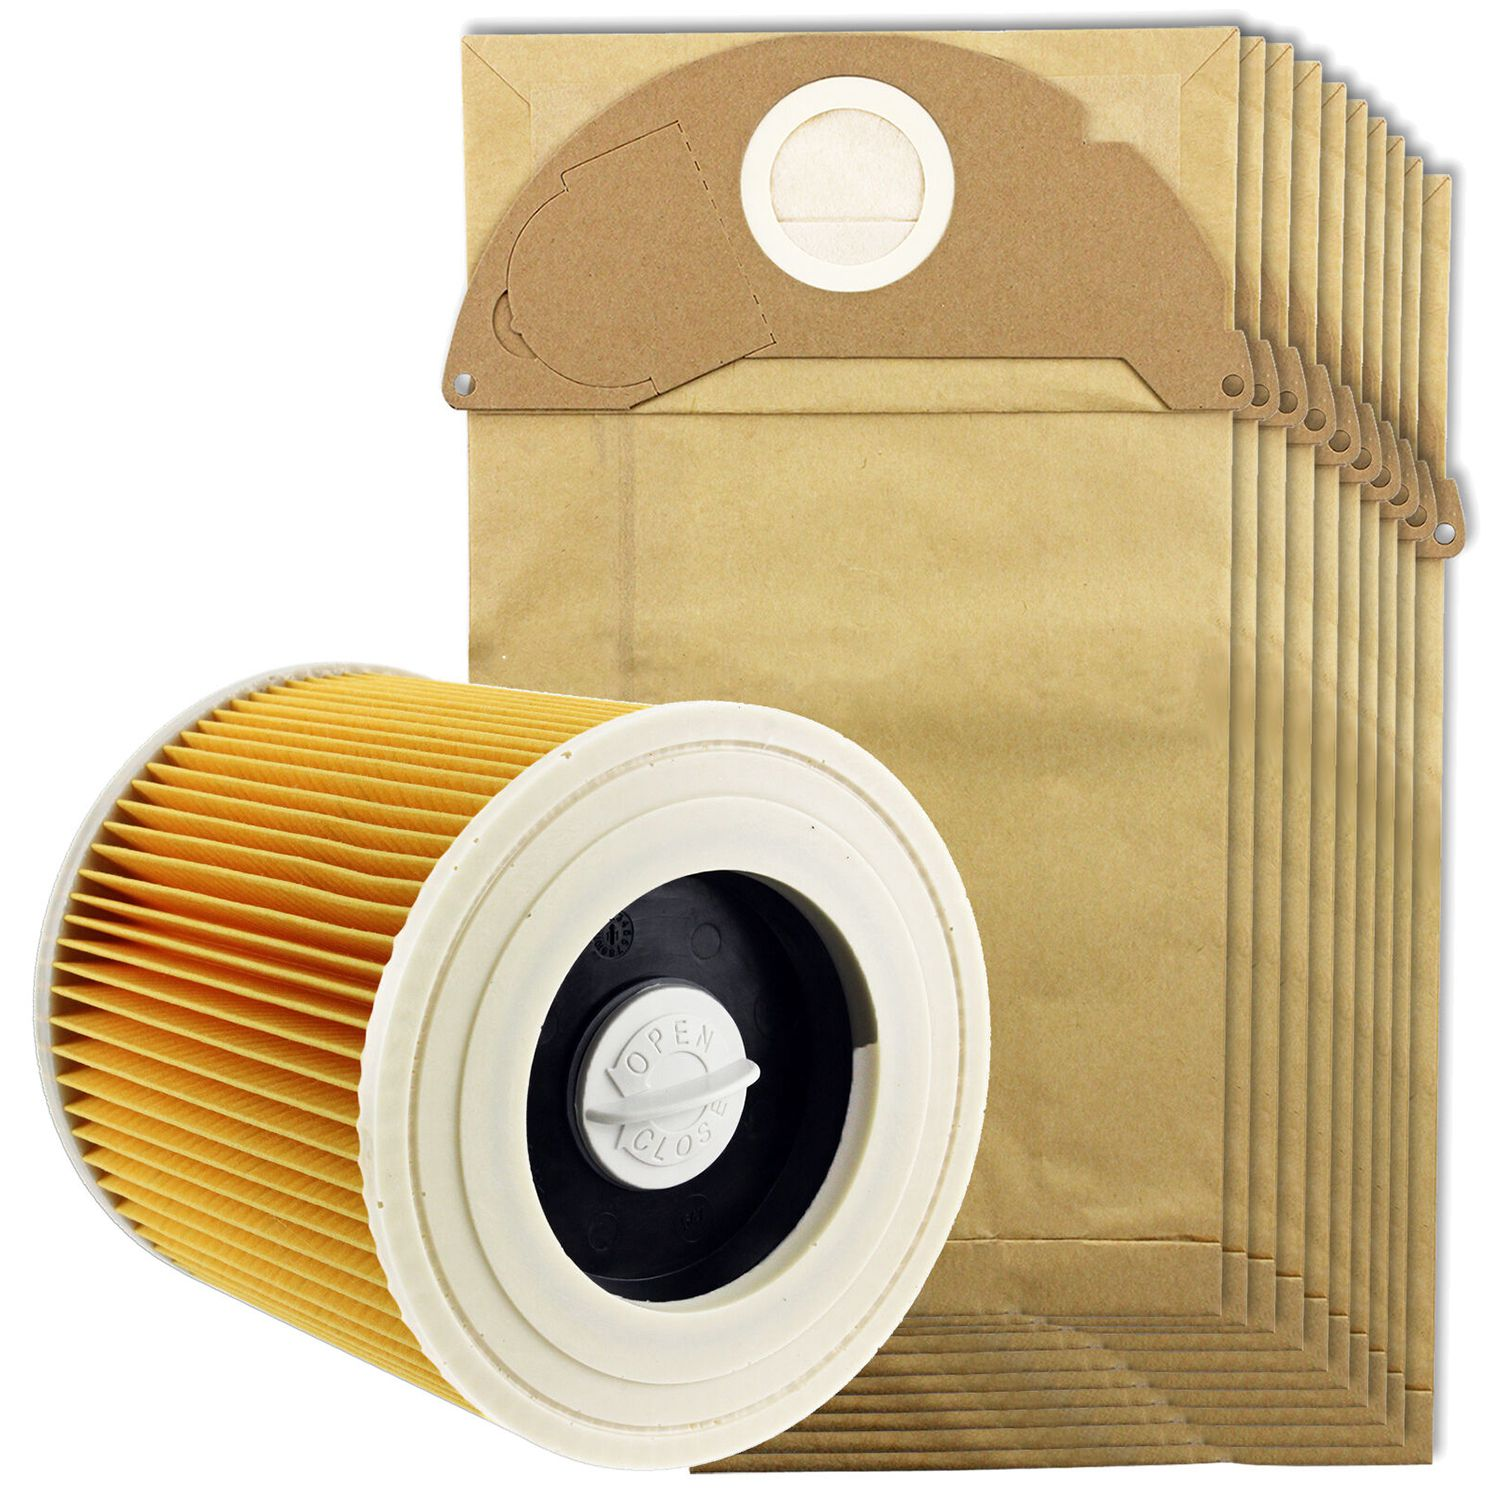 TOD For Karcher Wet&Dry Wd2 Vacuum Cleaner Filter And 10x Dust Bags|Vacuum Cleaner Parts| |  - title=